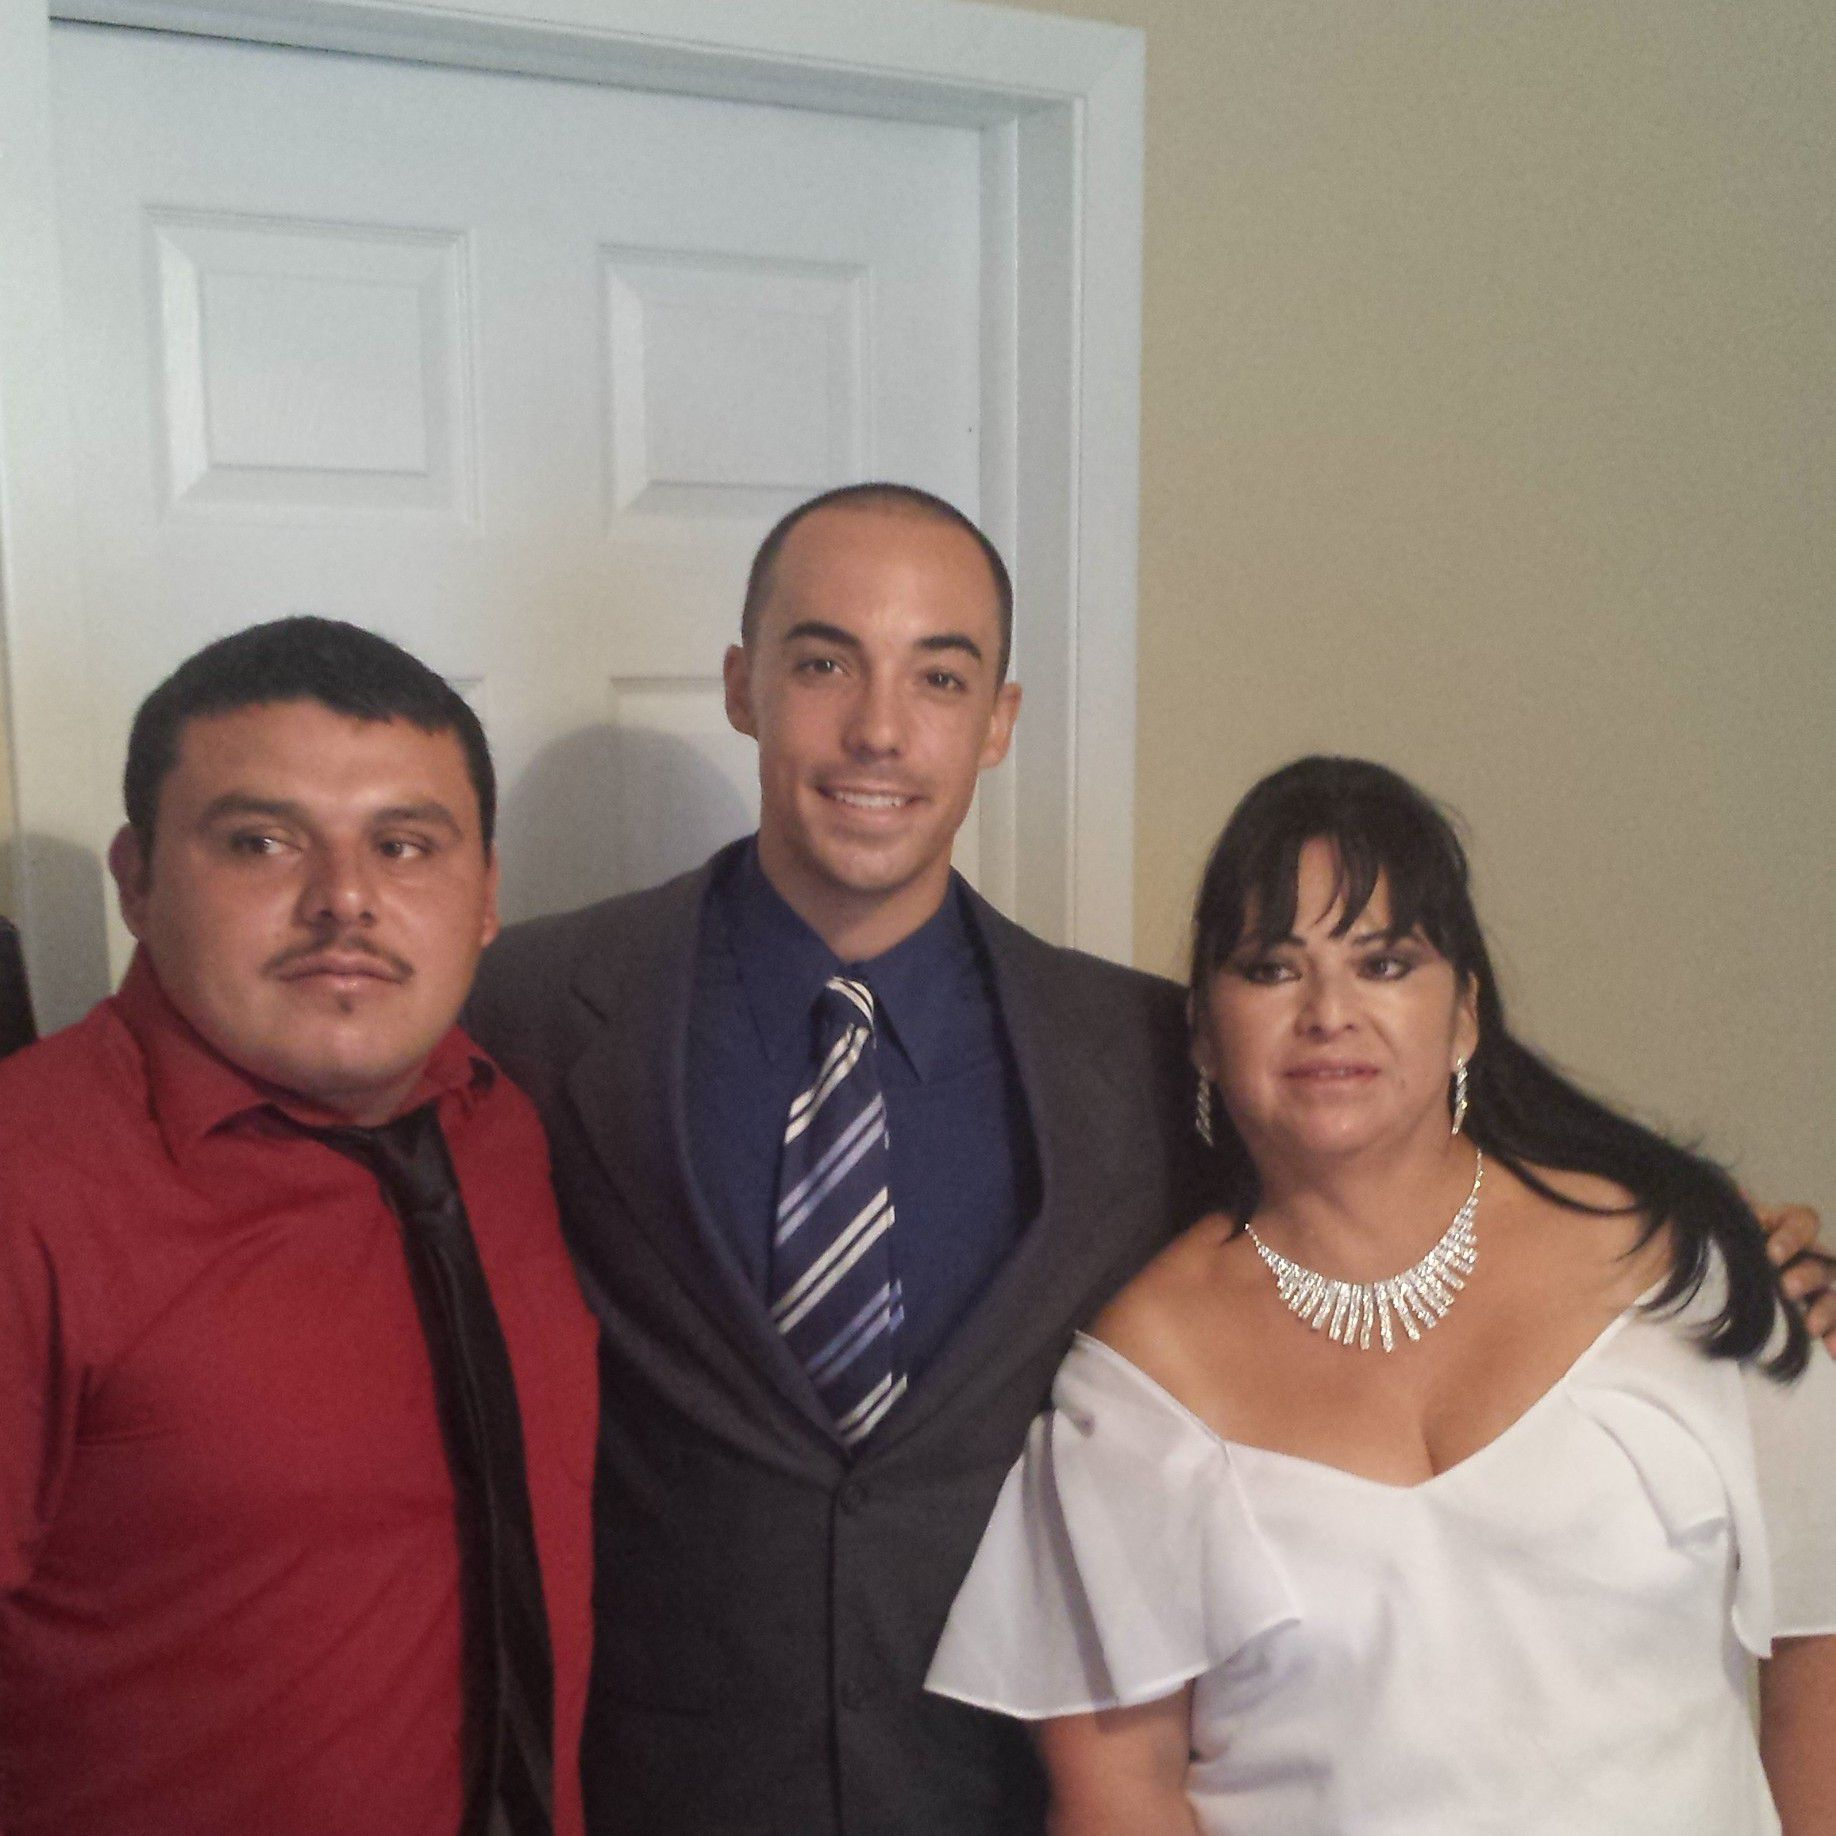 Tampa Spanish Wedding Ceremony Officiant